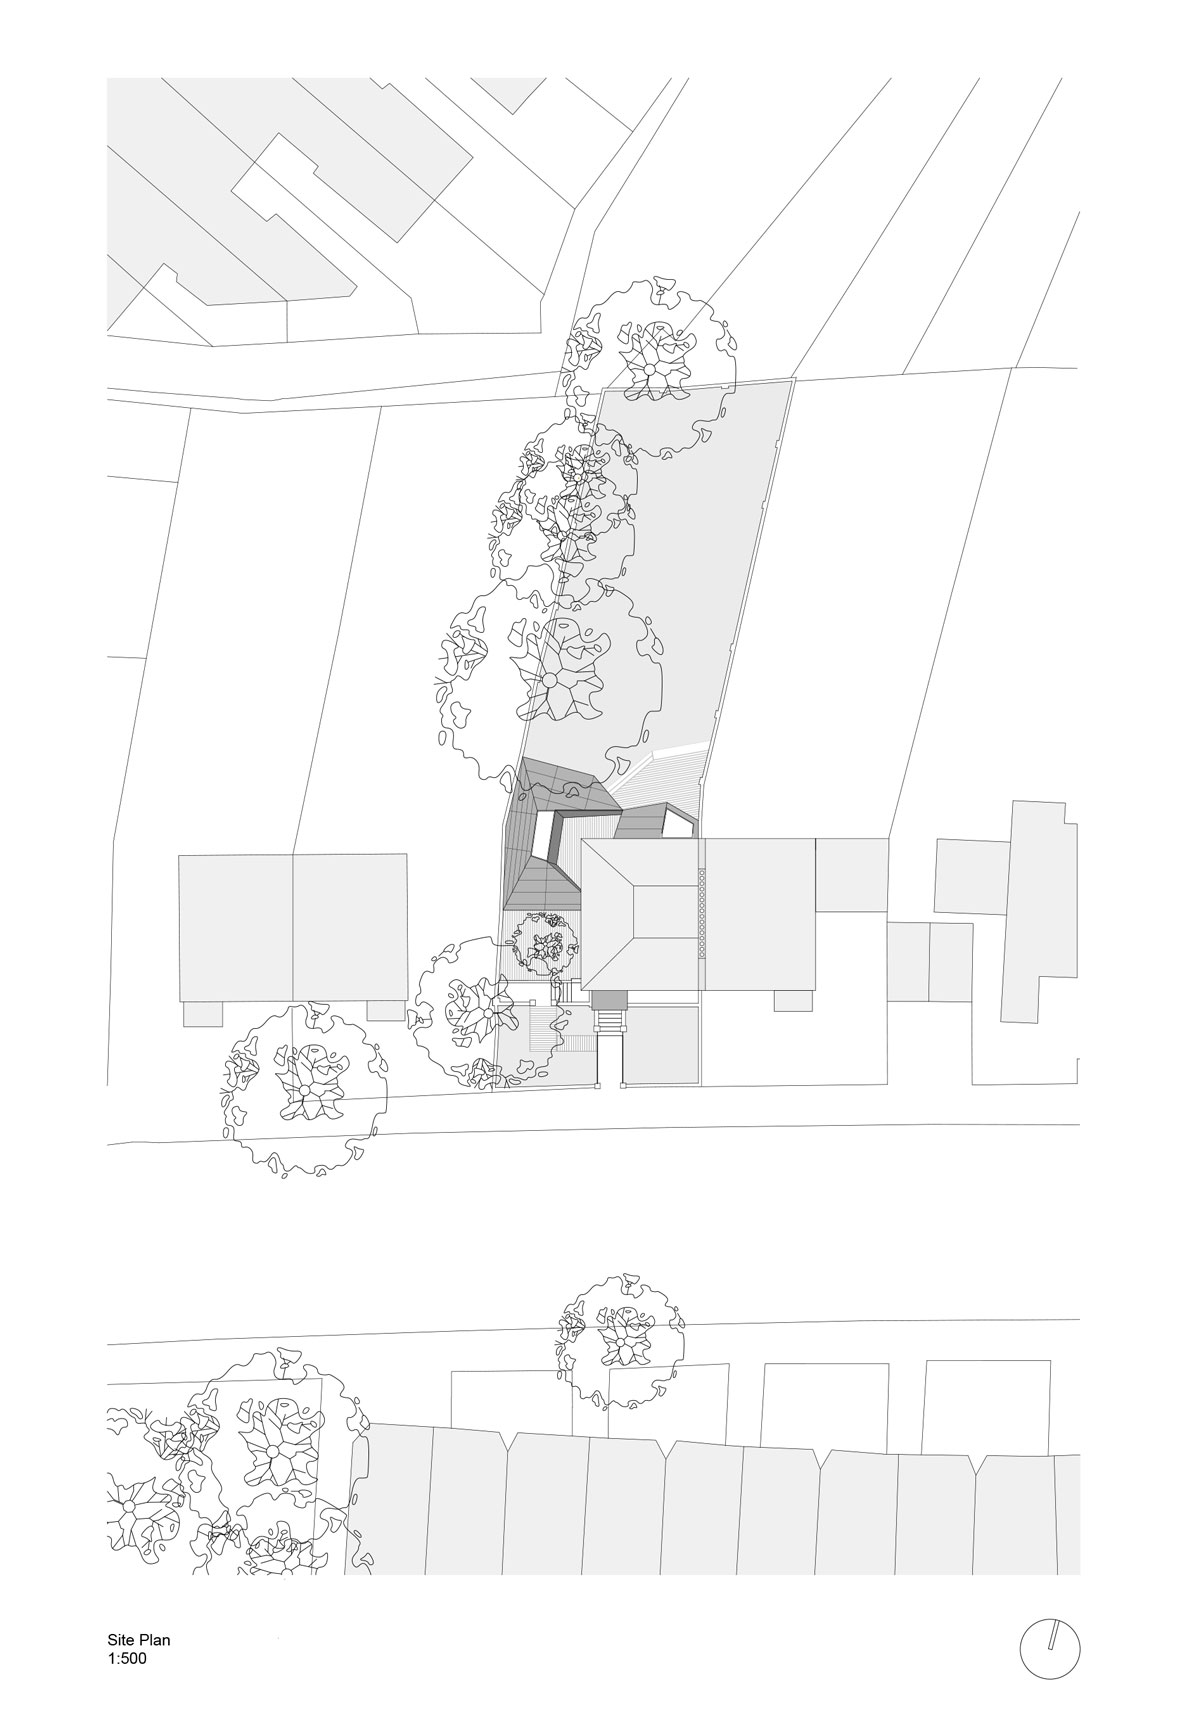 Lens House Extension by Alison Brooks Architects - Site Plan